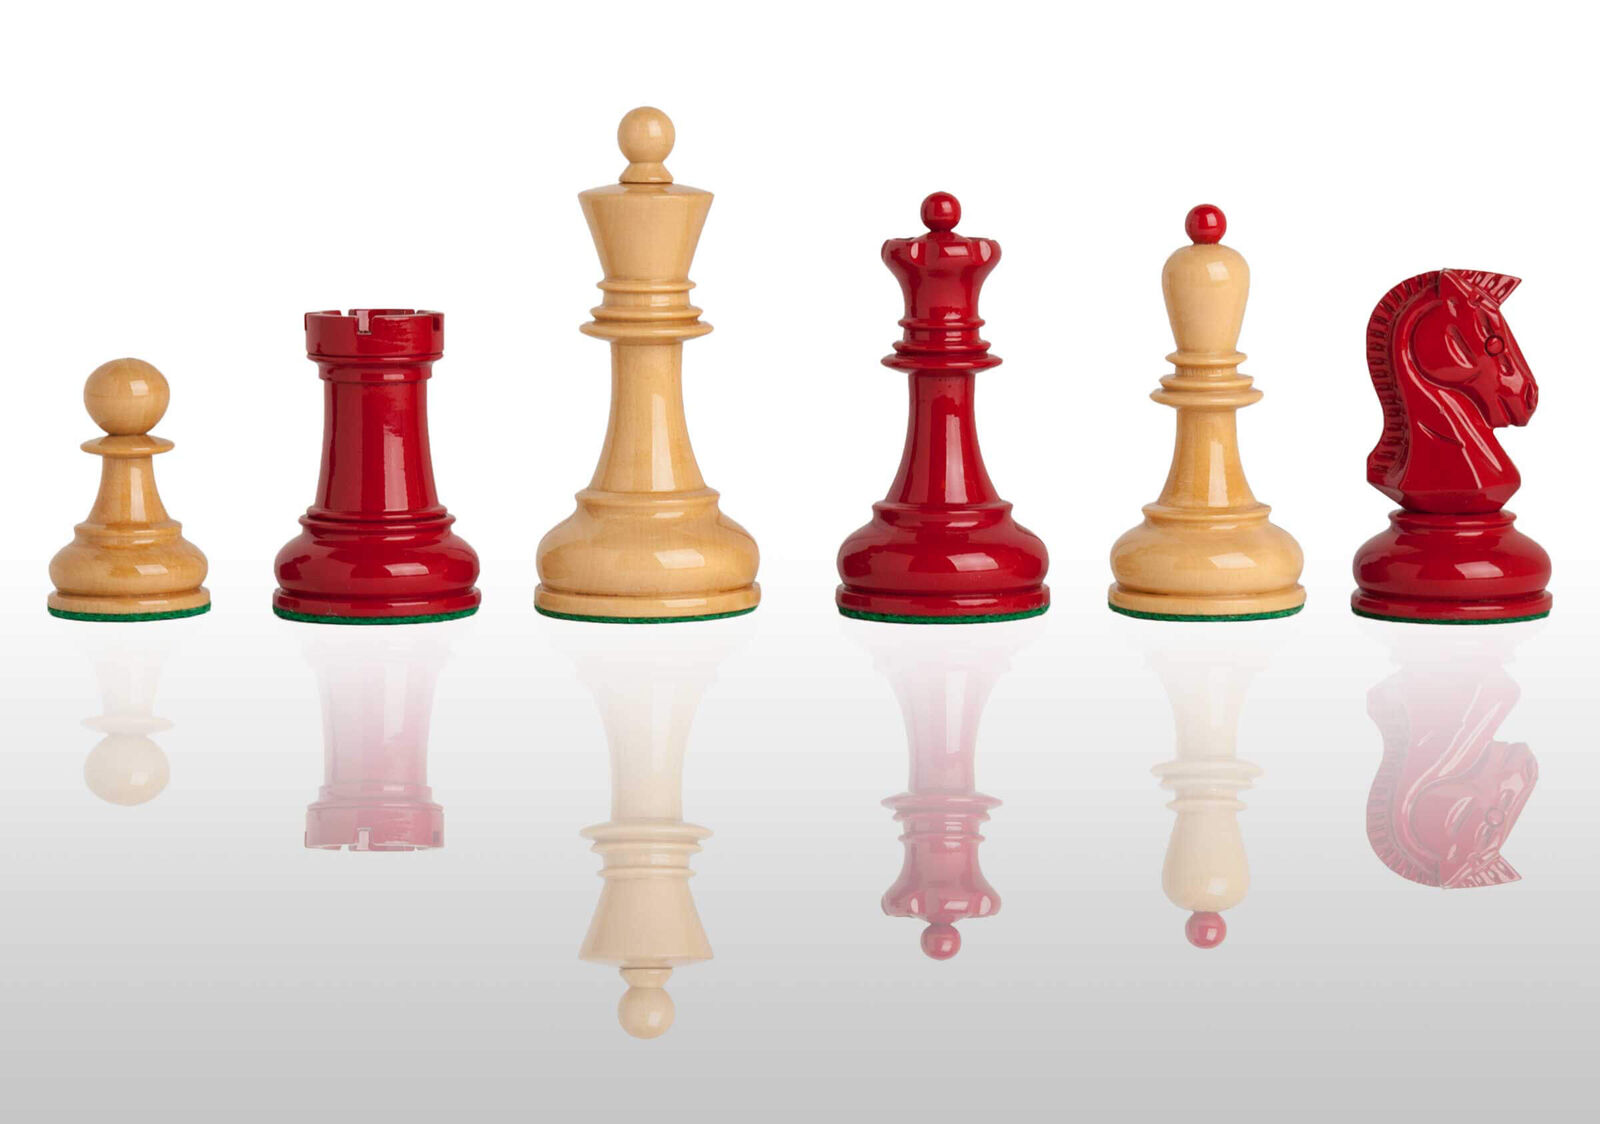 USCF Sales The Dubrovnik Chess Set - Pieces Only - 3.75  King - rosso and Natural